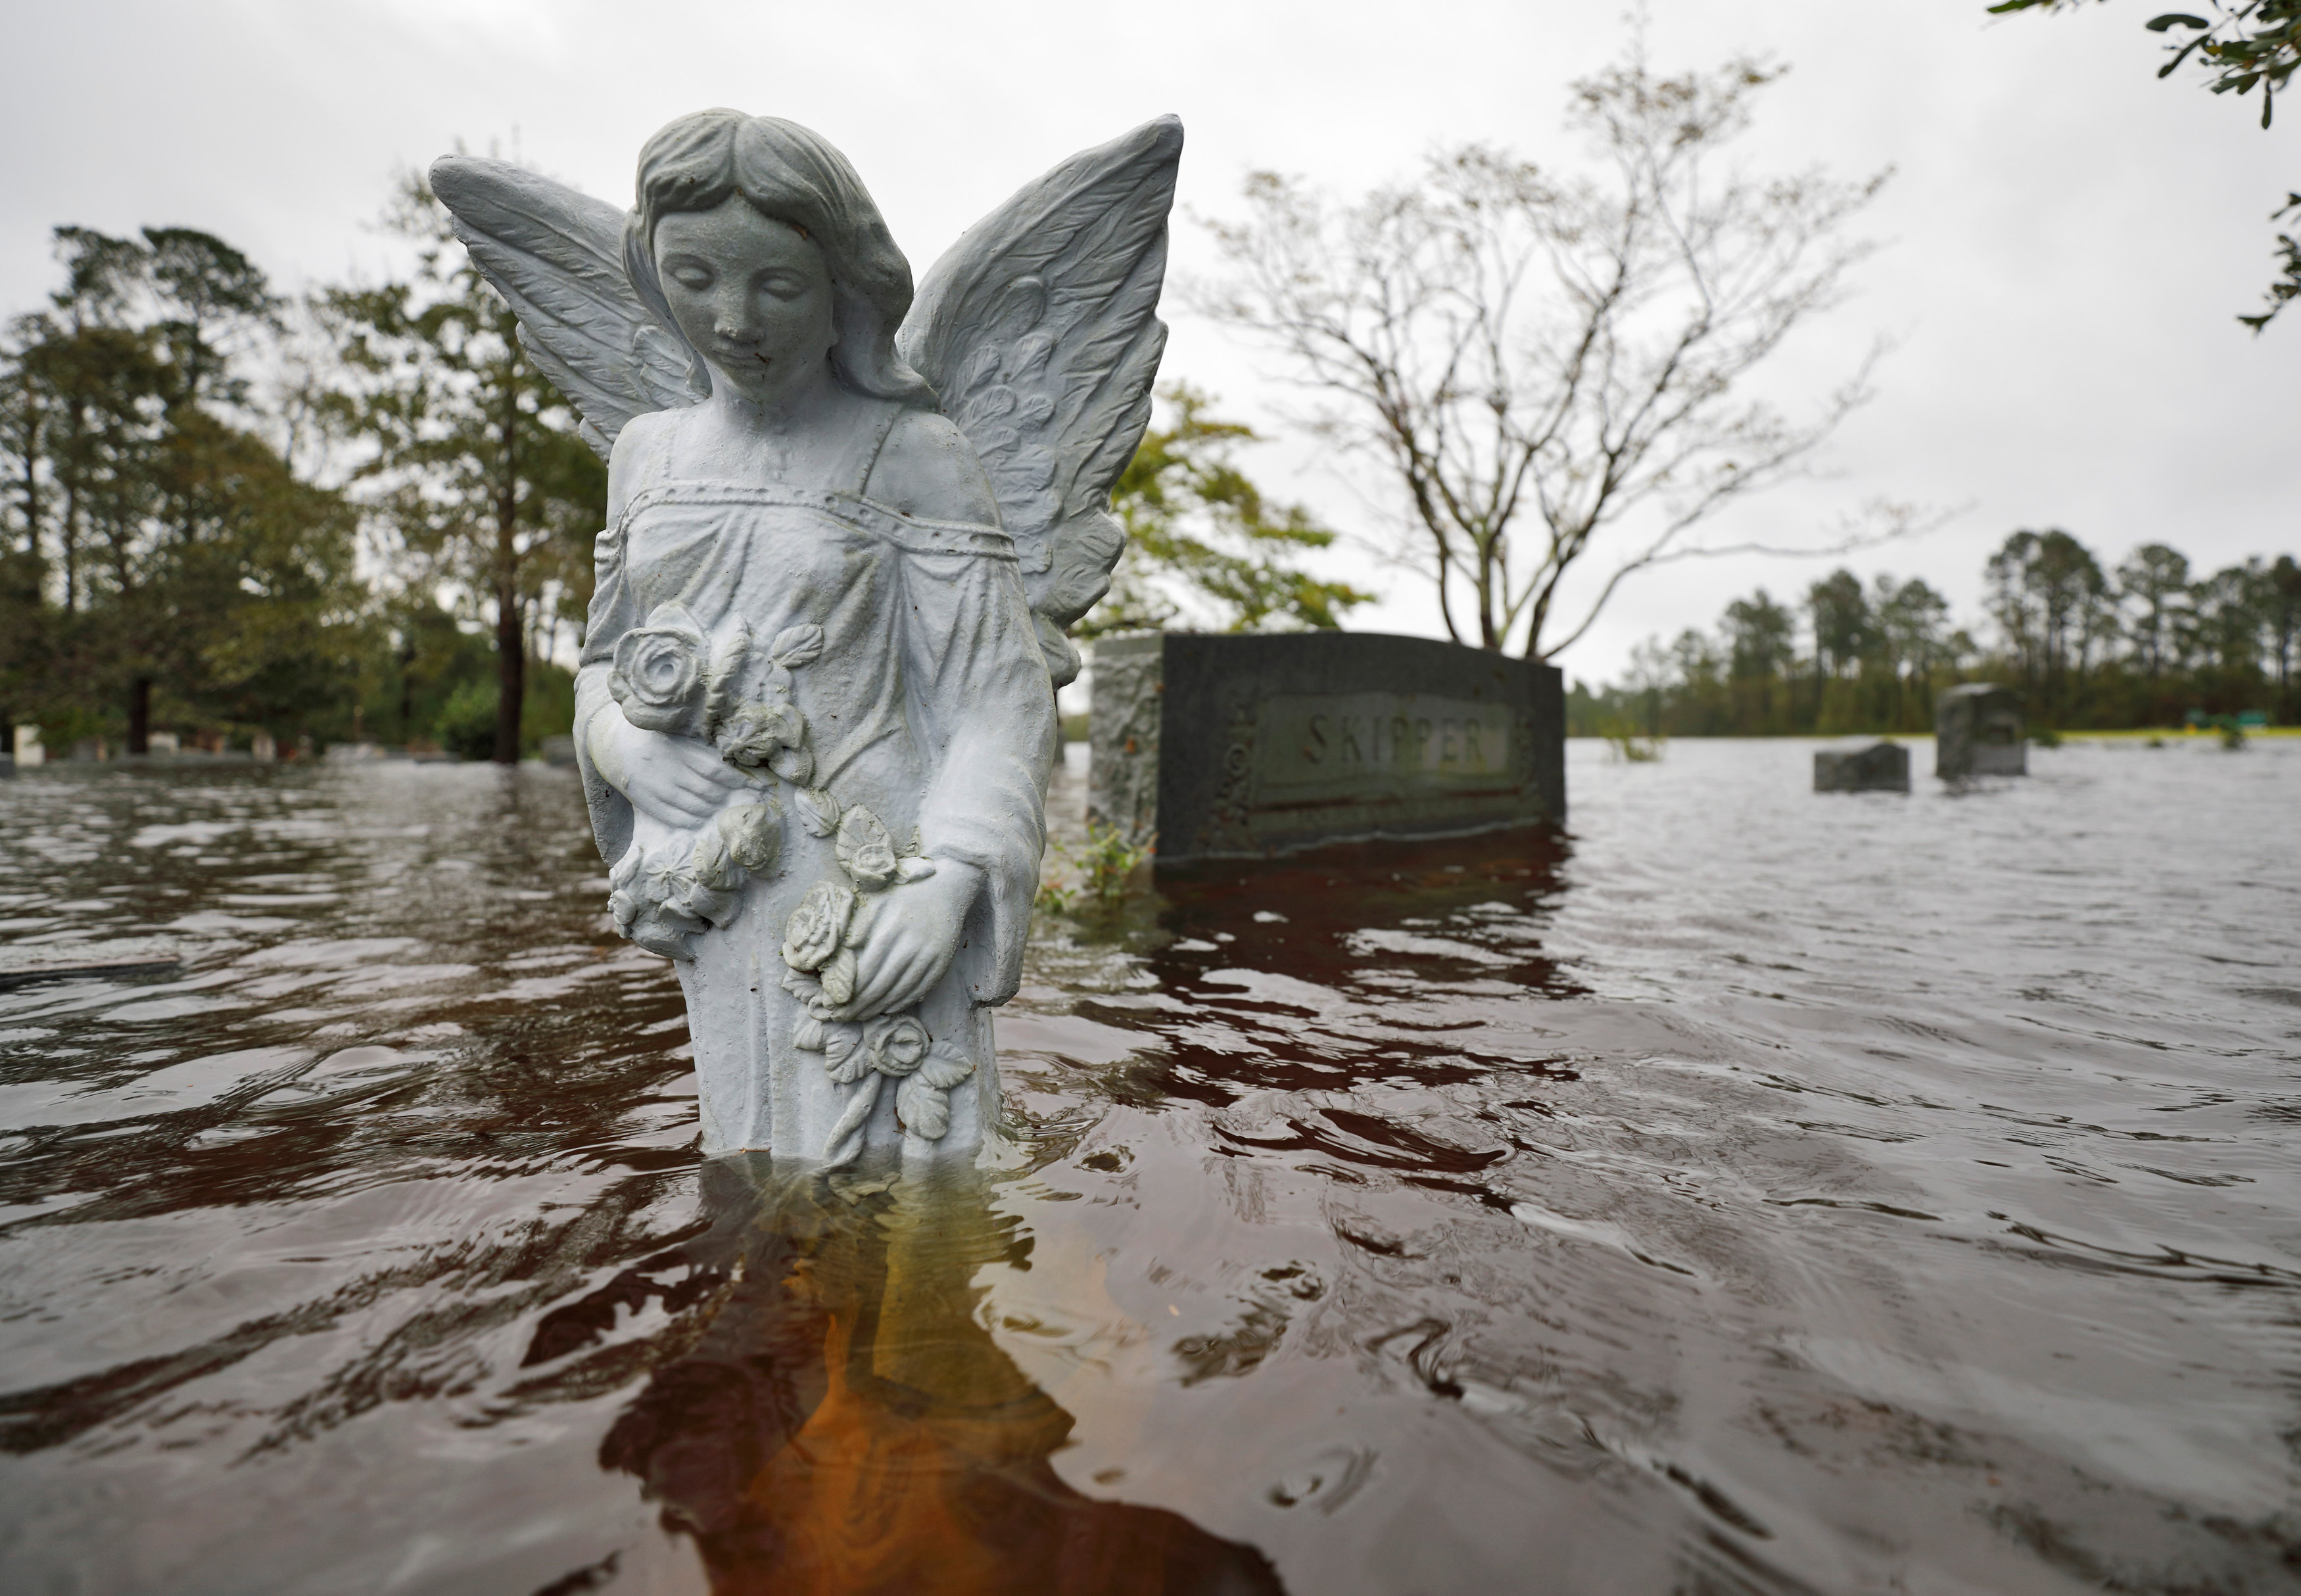 A statue of an angel is partially submerged by flood waters in the cemetery of a church where residents took shelter and later evacuated, in the aftermath of Hurricane Florence in Leland, North Carolina